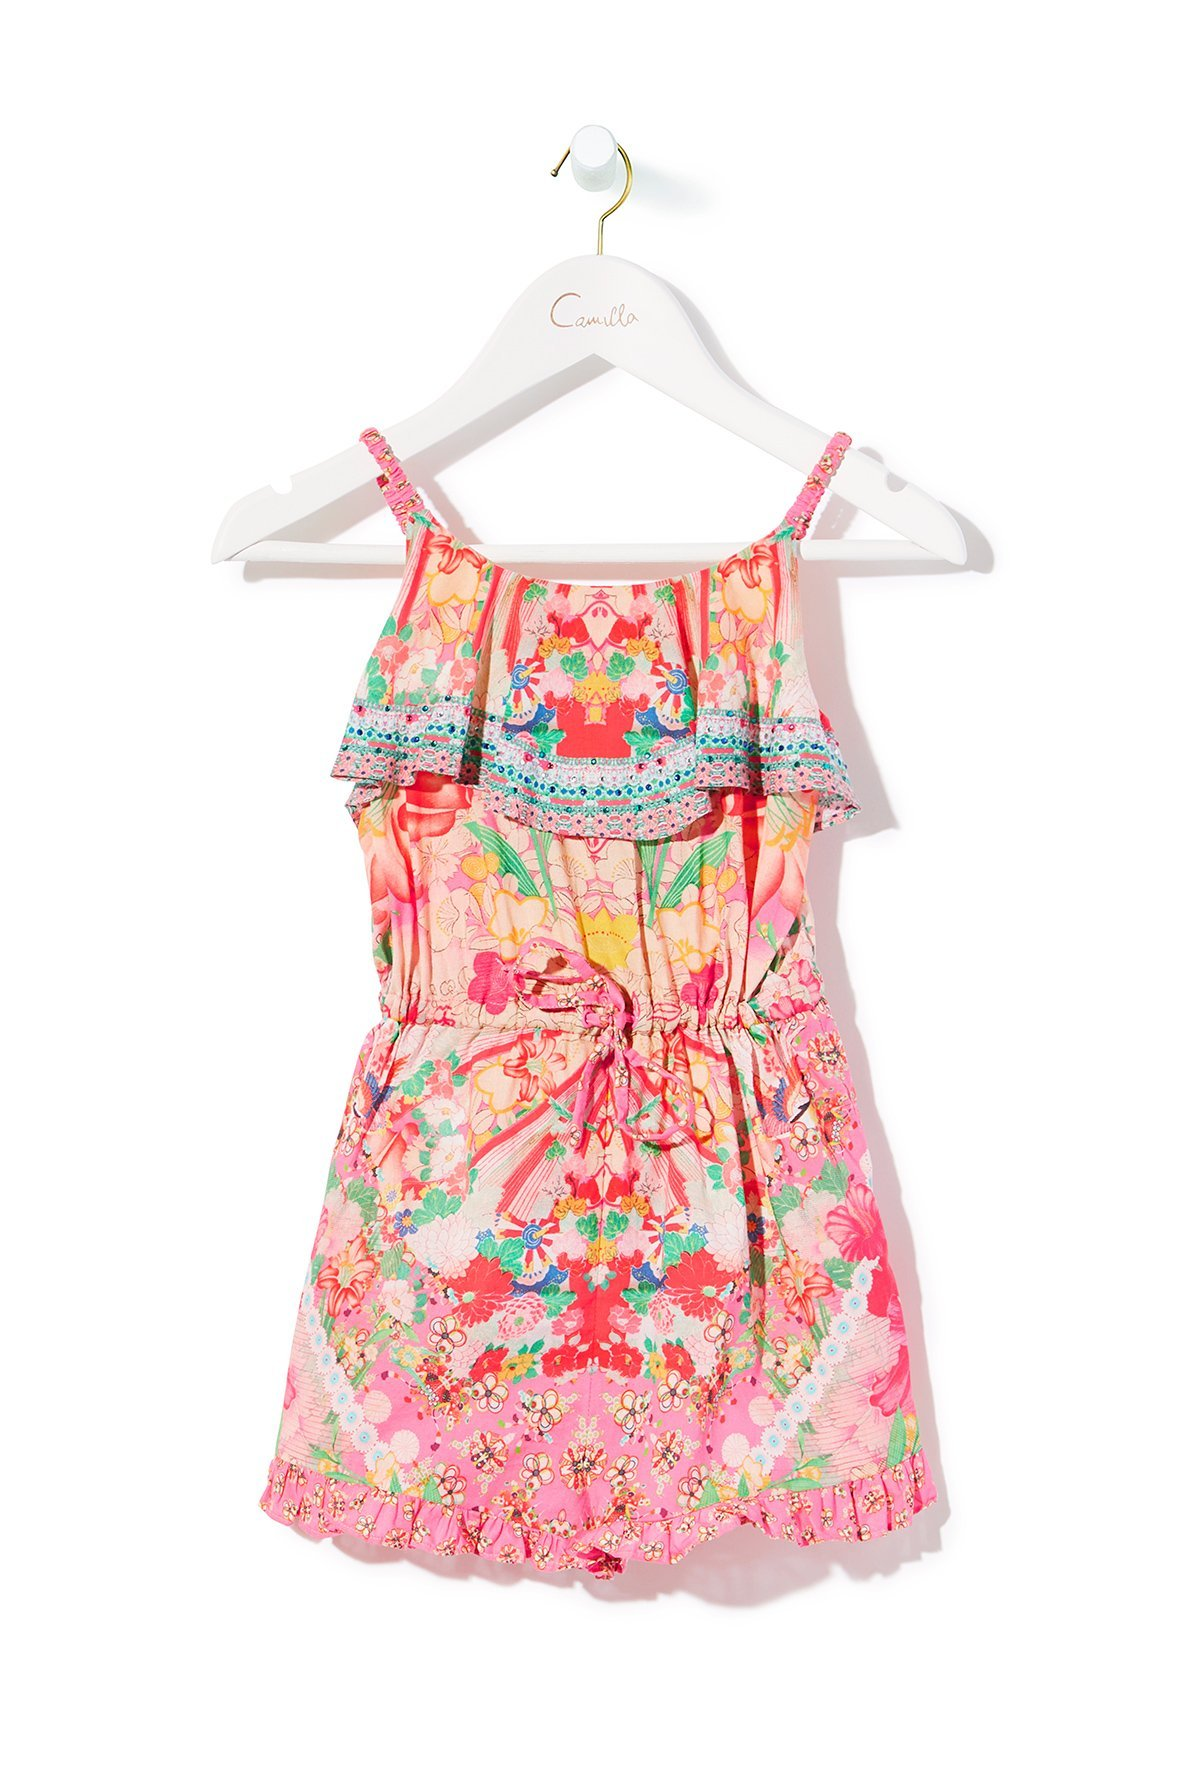 CAMILLA_KIMONO-KISSES_KIDS-PLAYSUIT-WITH-FRILL_1024x1024_2x_e94539df-d04b-4c1d-9f29-fbebd6cdcedb